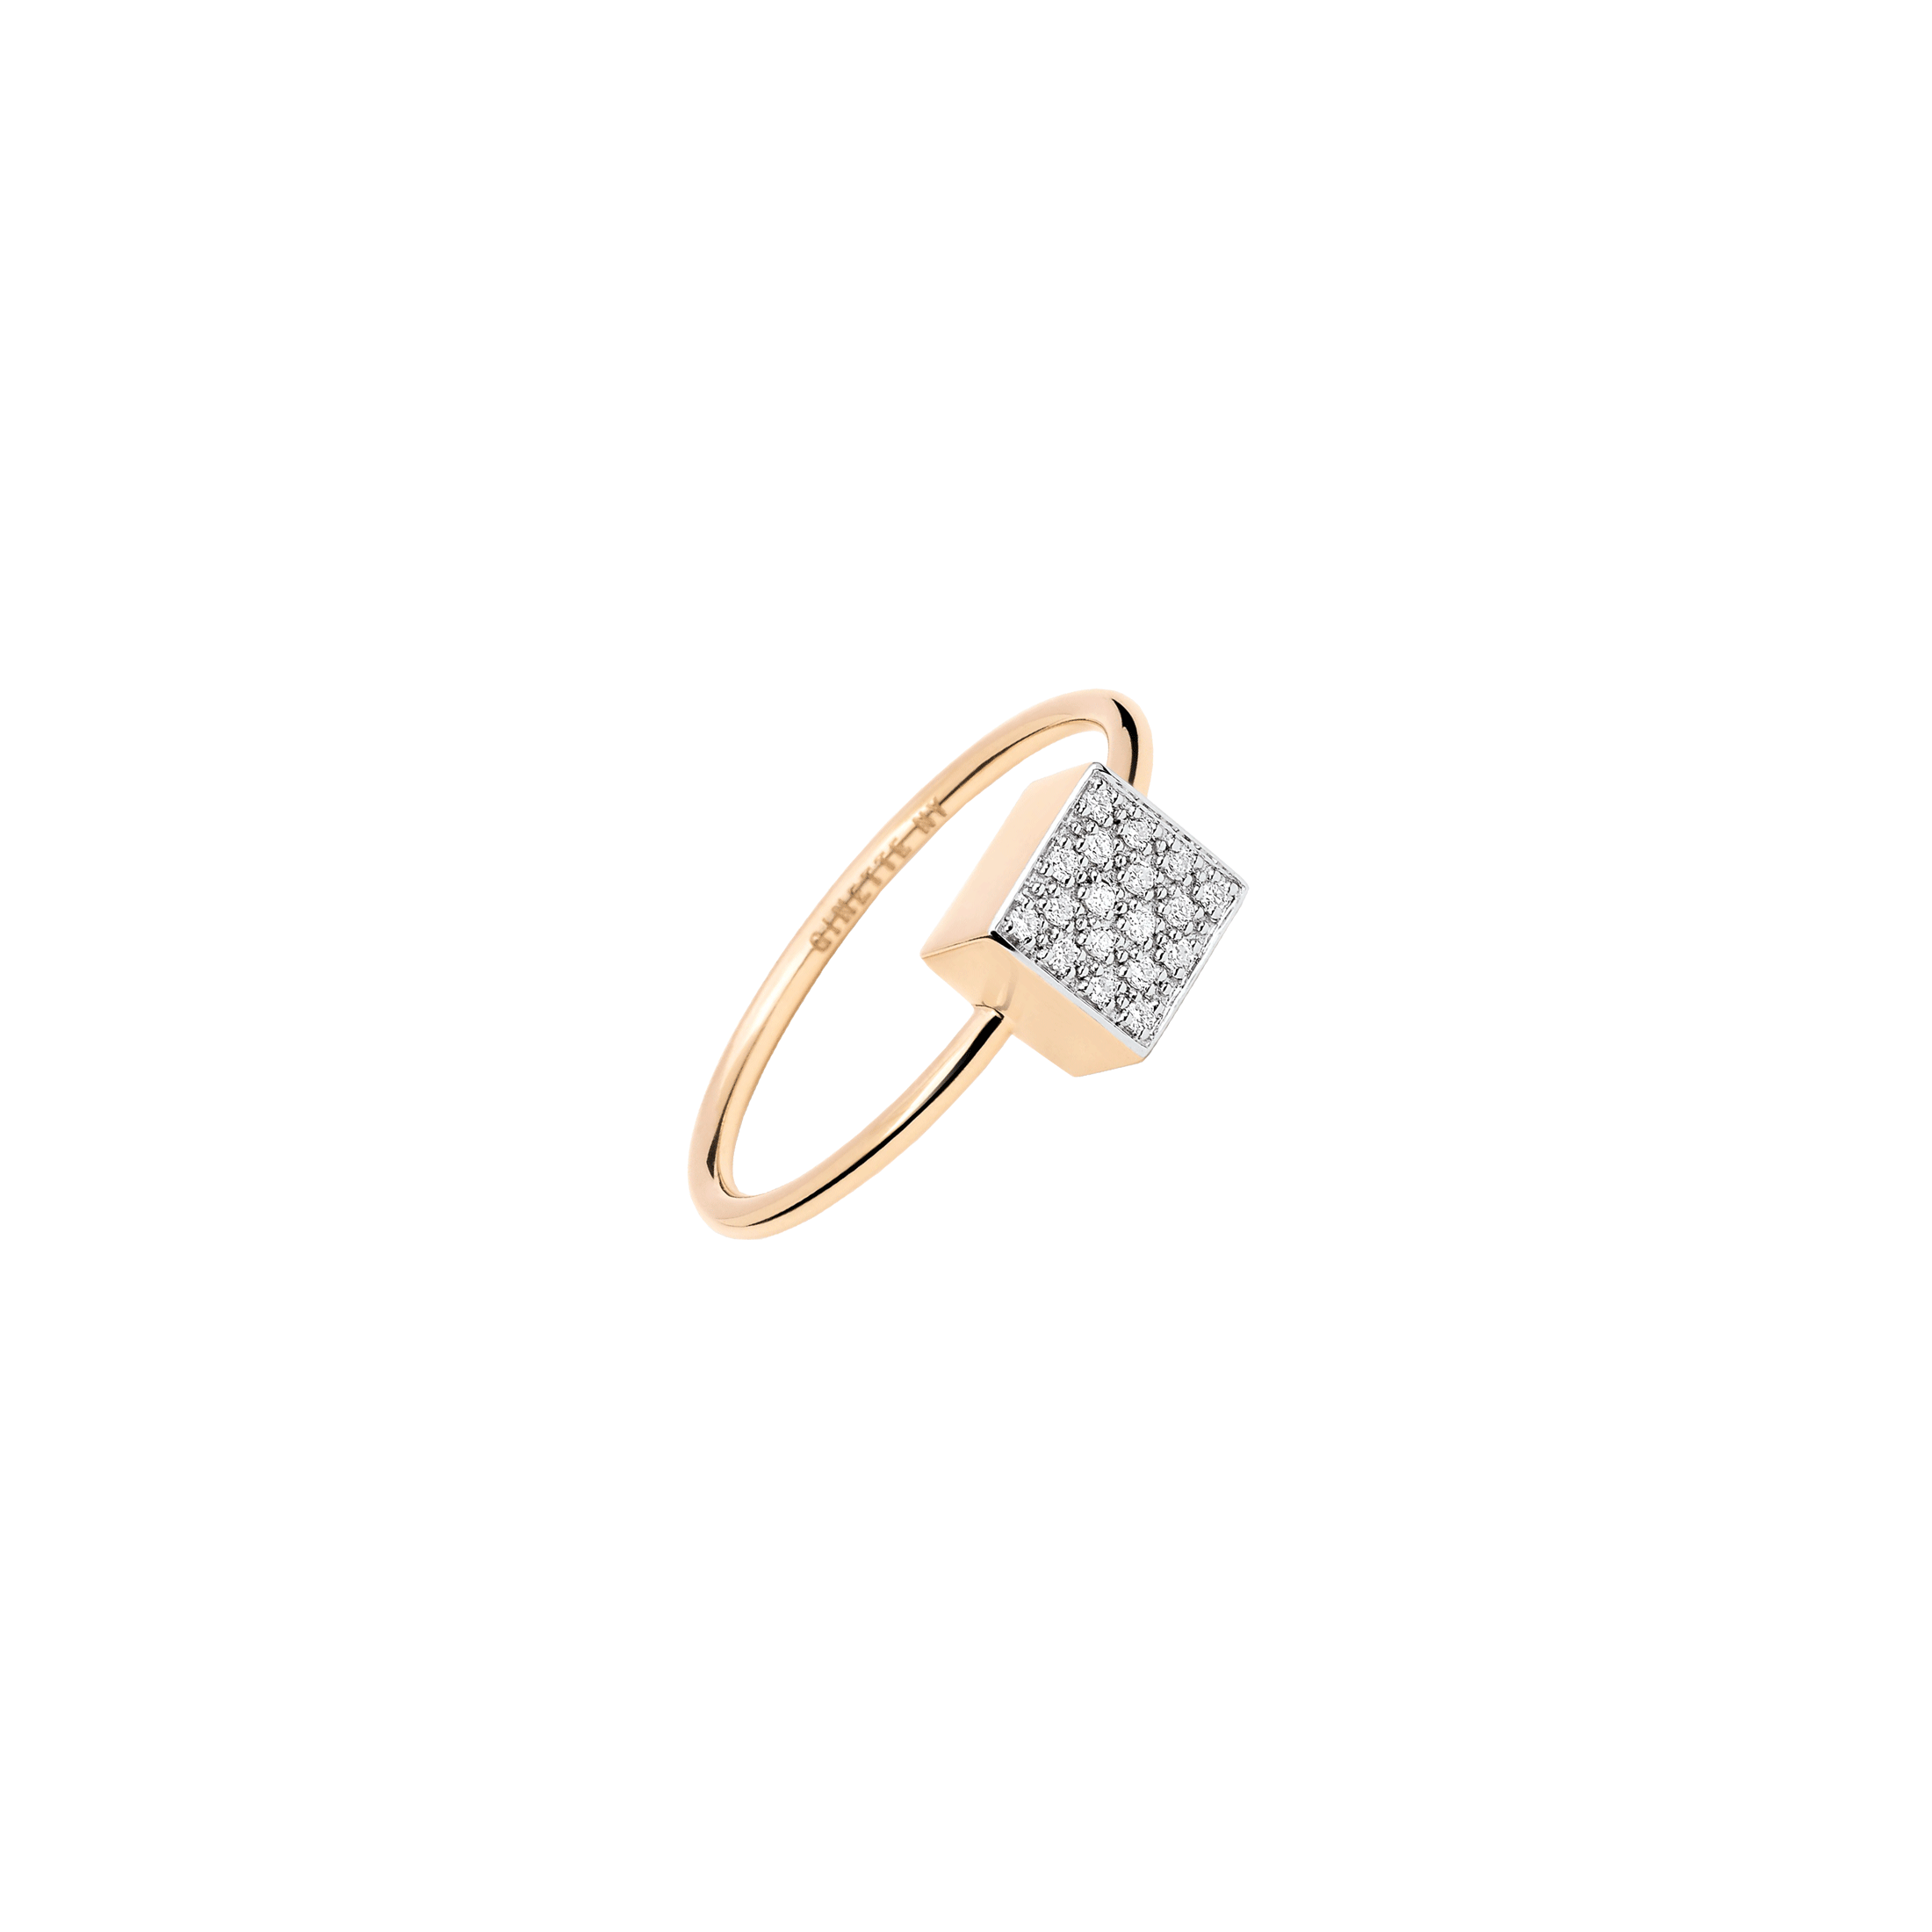 Bague Ginette NY Baby Ever Square en or rose et diamants